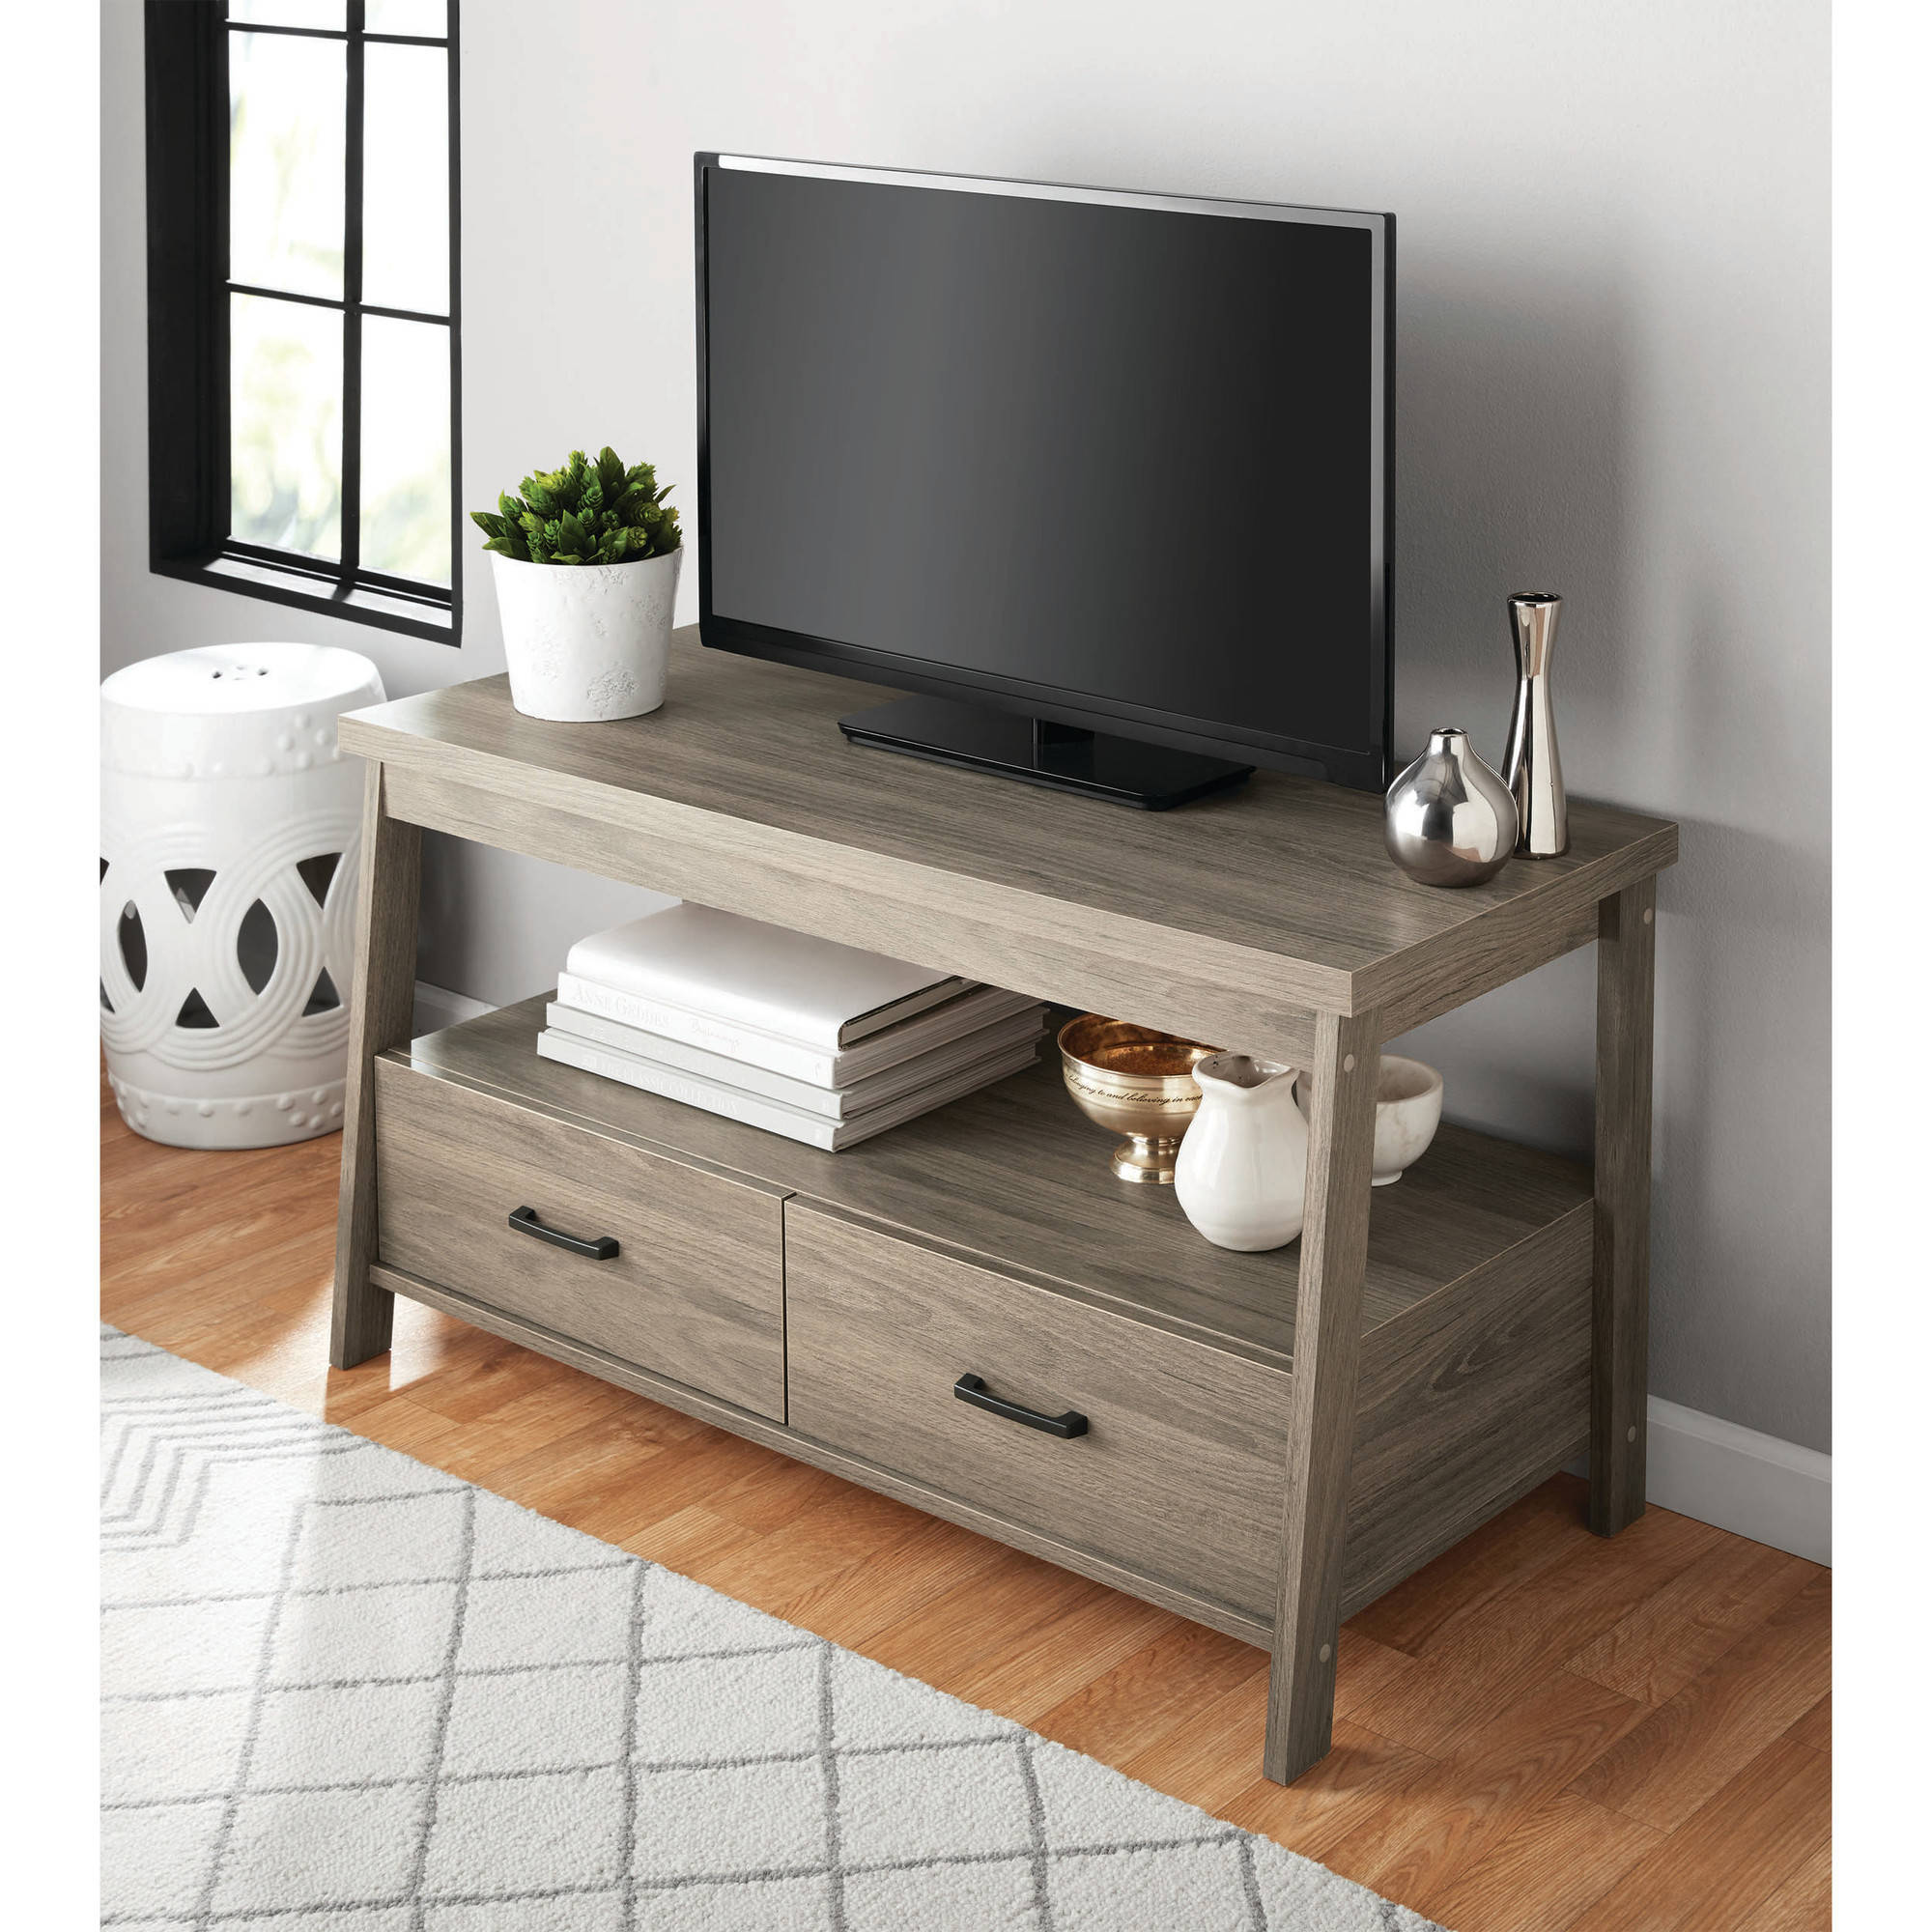 Mainstays Logan TV Stand for TVs up to 47\ by Sauder Woodworking